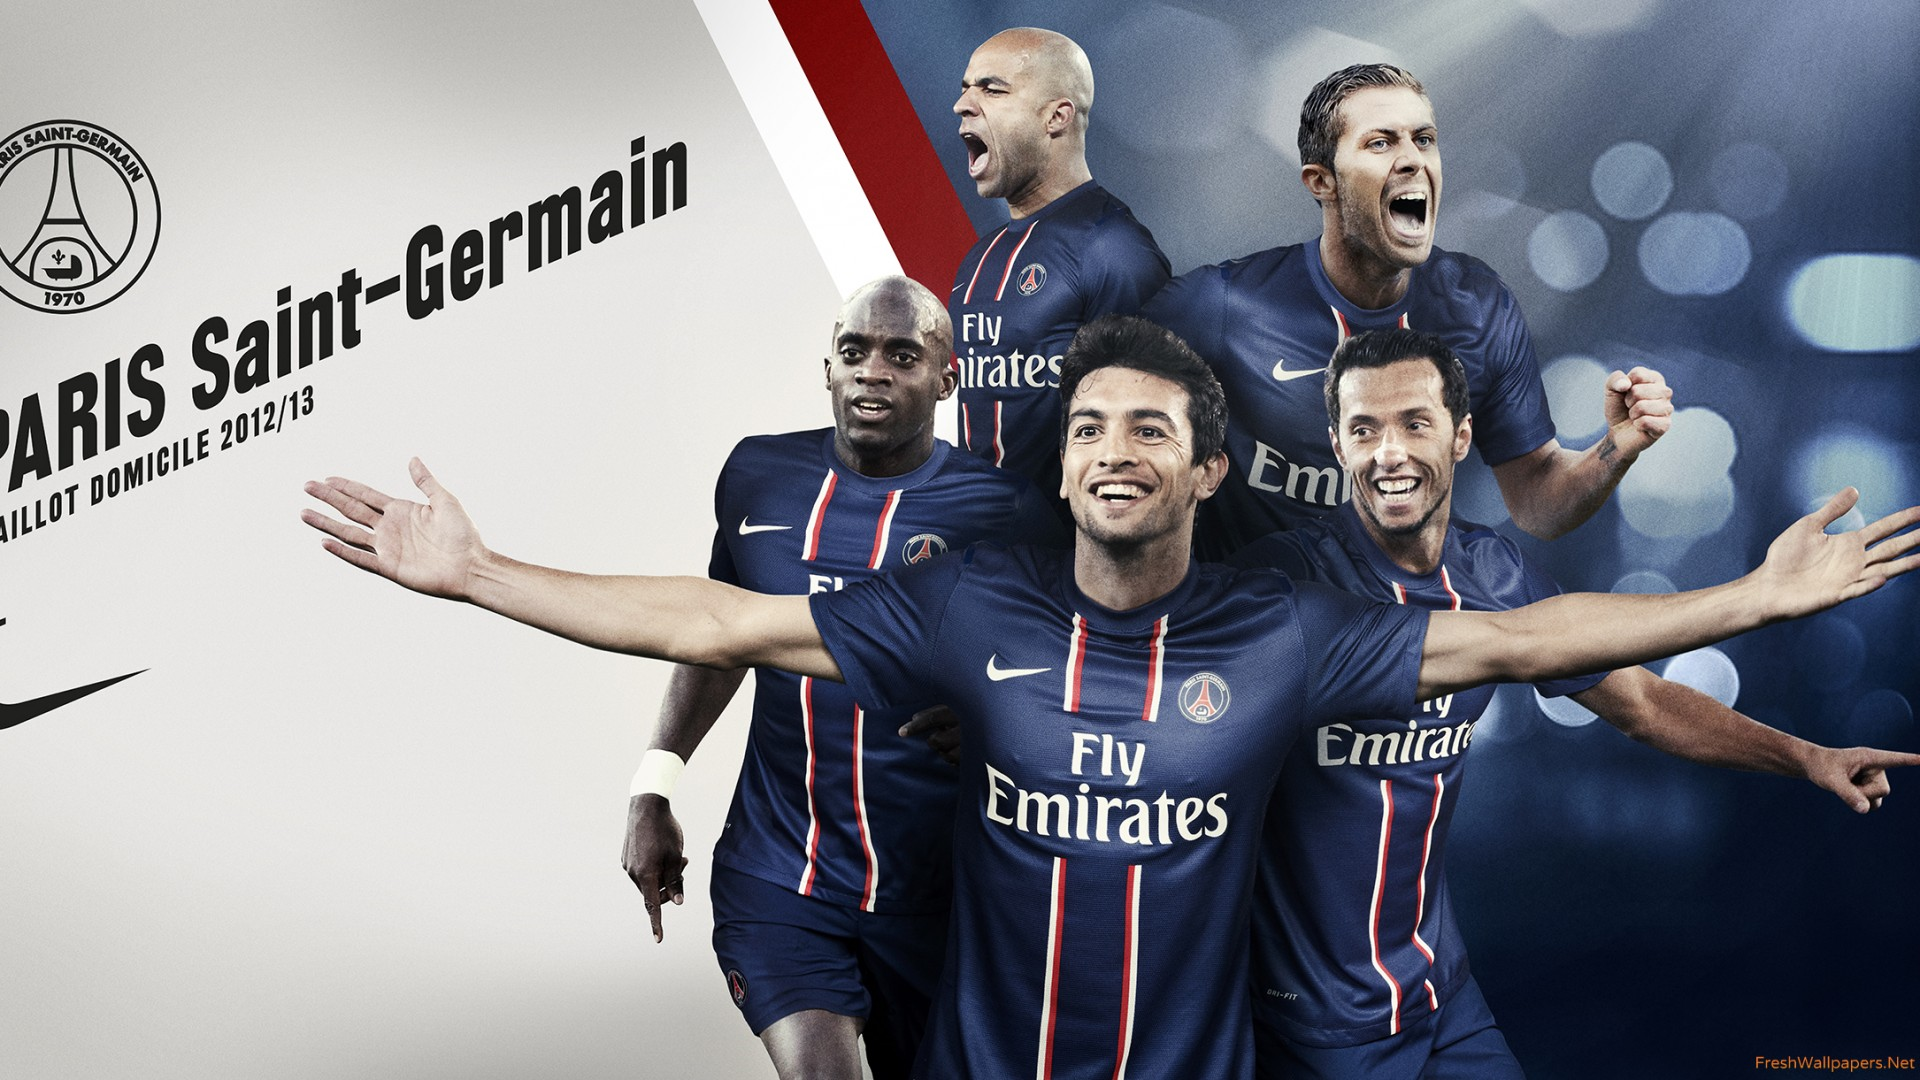 1920x1080 - Paris Saint-Germain F.C. Wallpapers 9